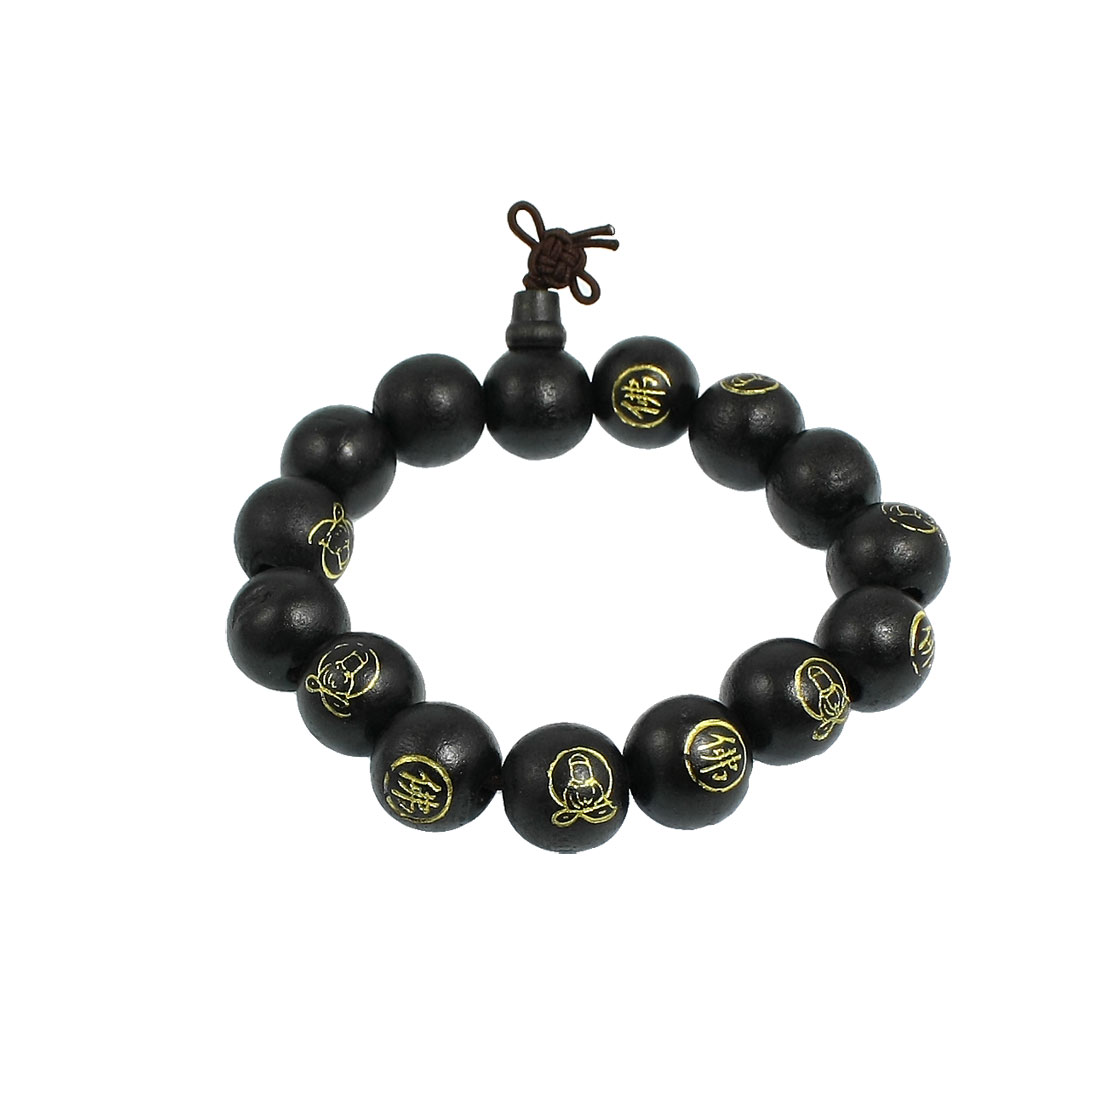 "Black Wood Beads Chinese Character Words Buddha Carved Bracelet 9.8"" Girth"